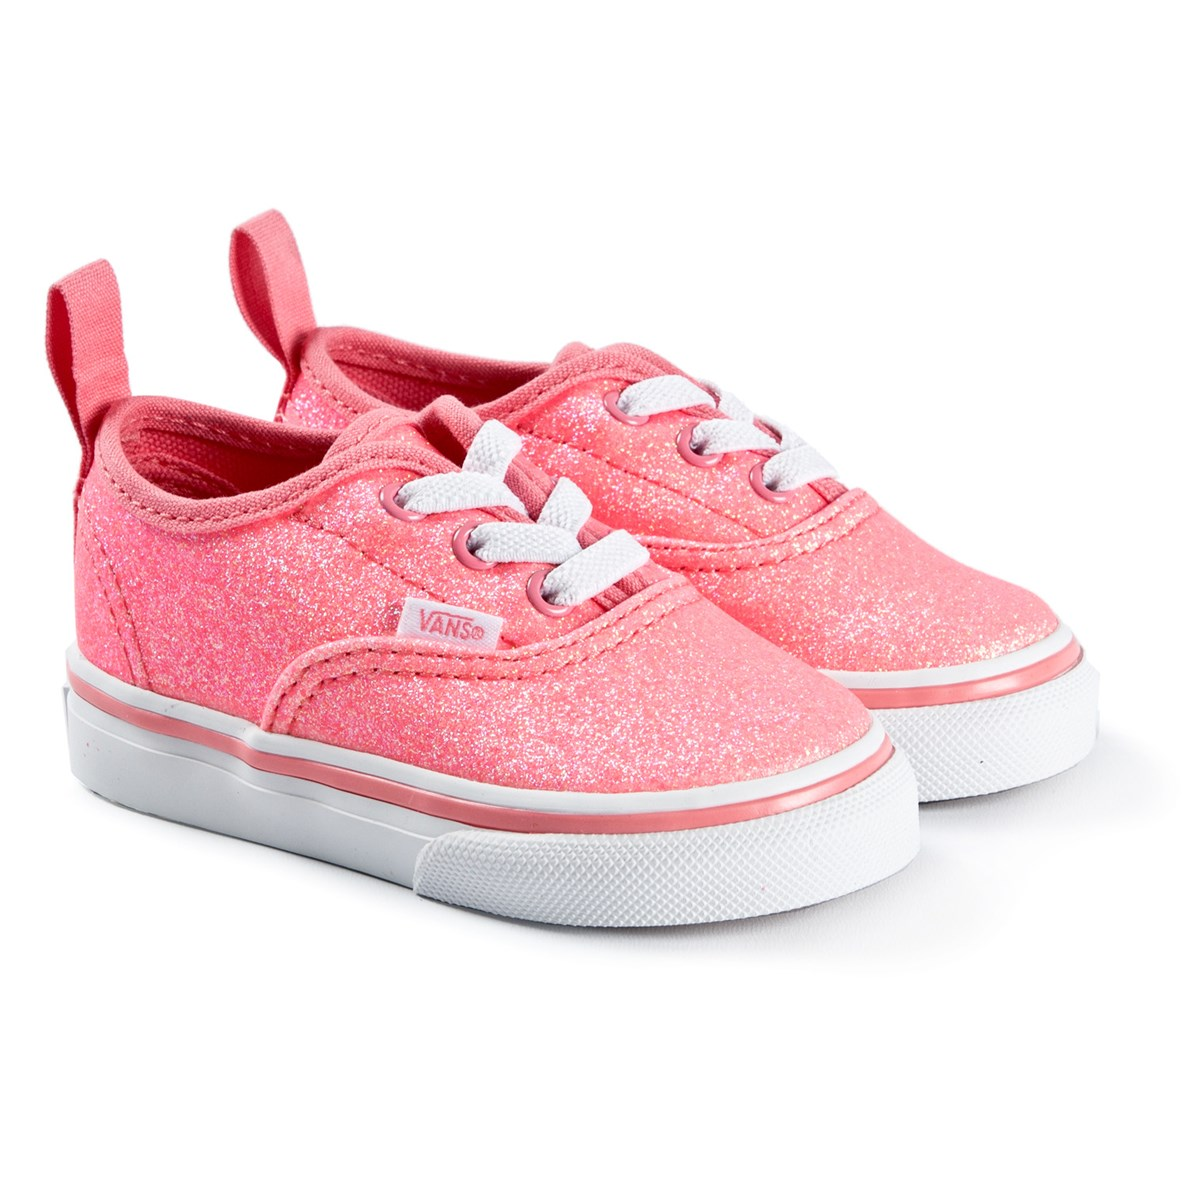 Authentic Infants Sneakers Neon Glitter